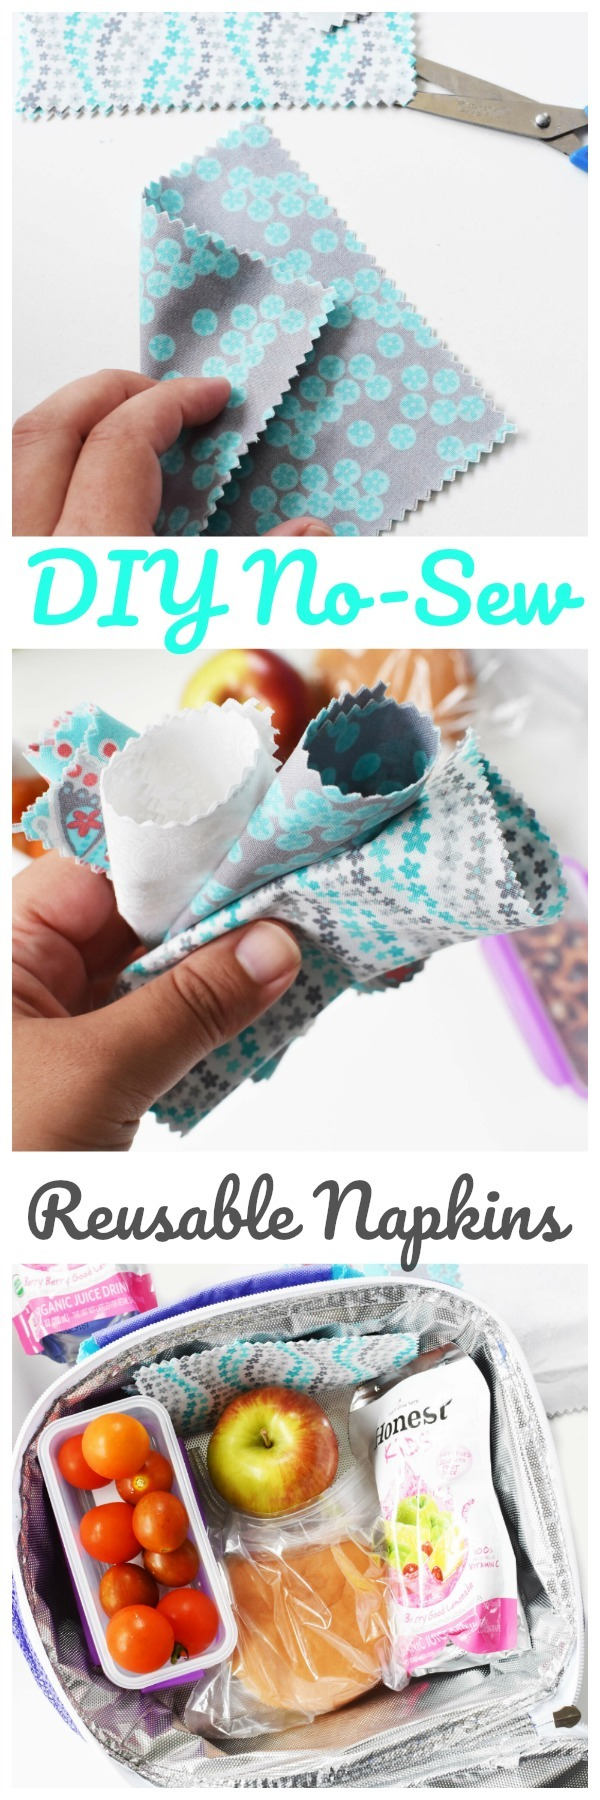 DIY No-Sew Reusable Napkins